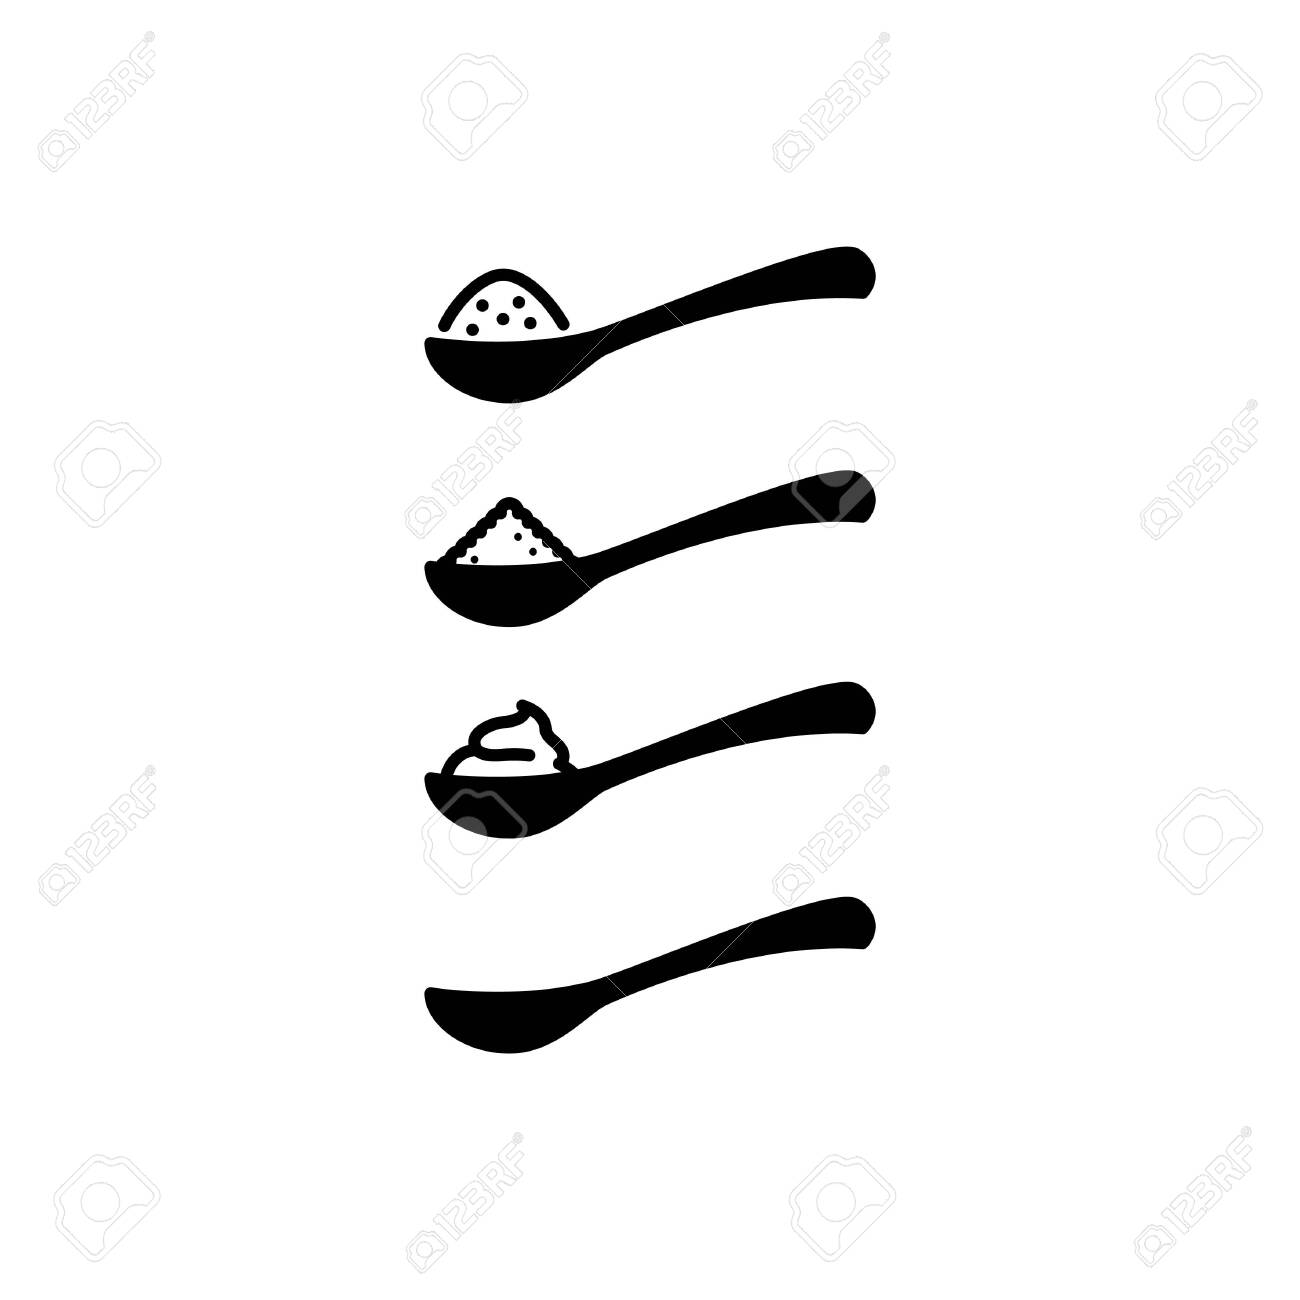 full spoon icon vector line illustration royalty free cliparts vectors and stock illustration image 127734860 full spoon icon vector line illustration